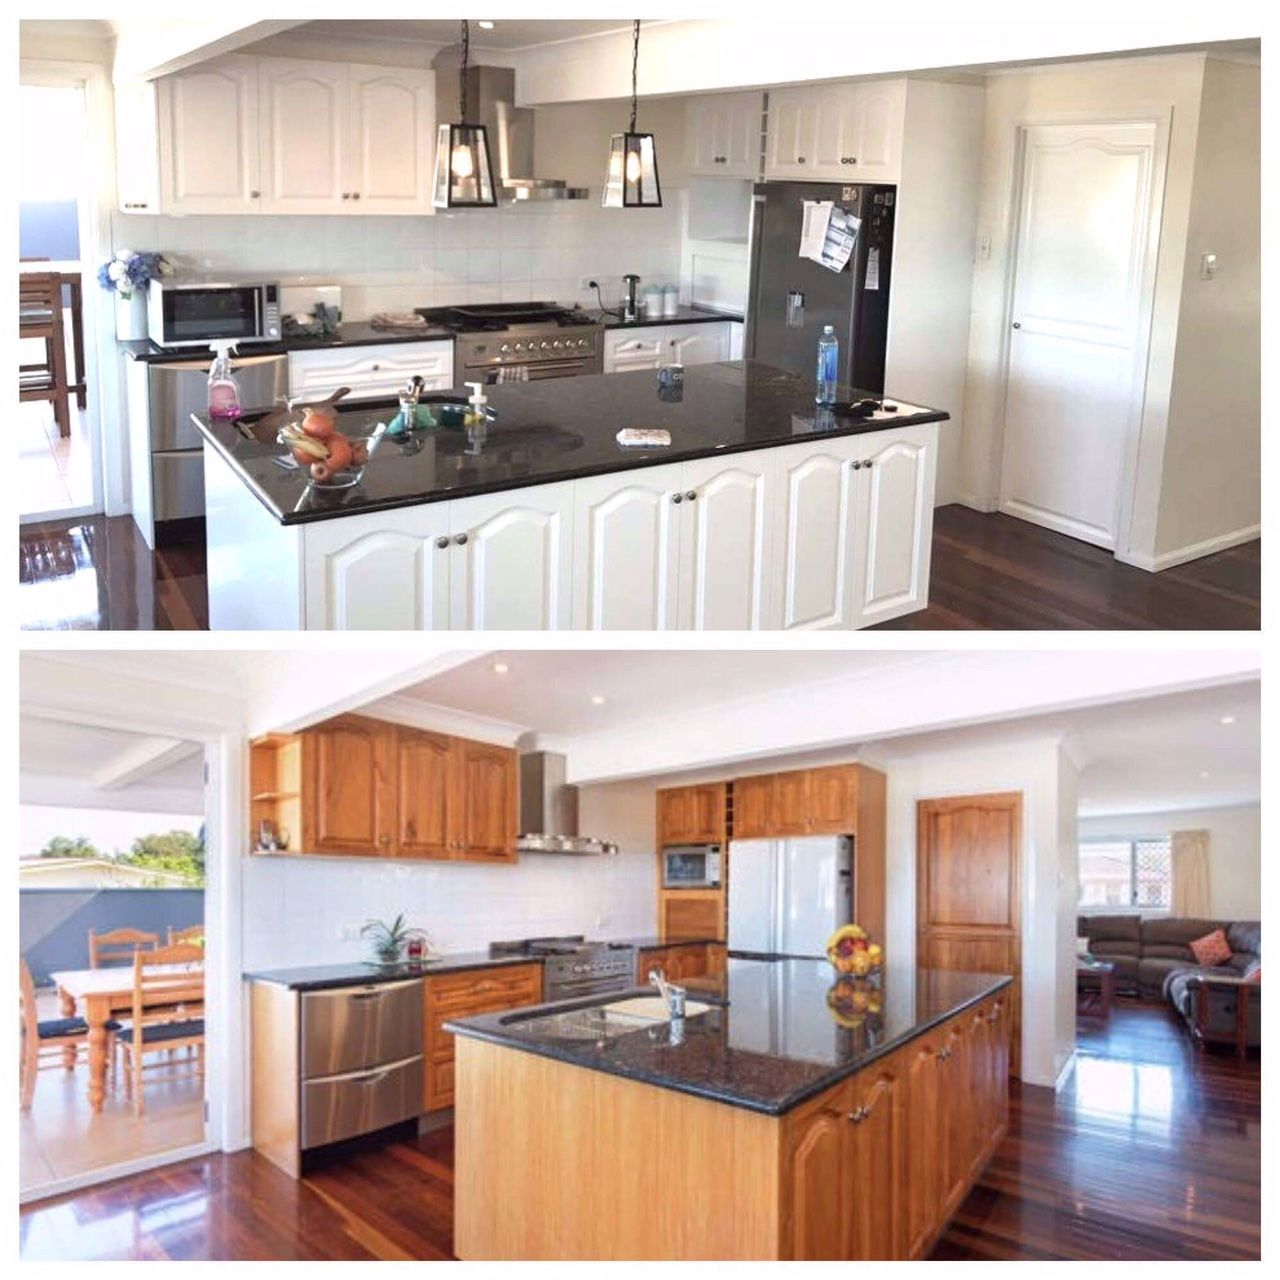 Brisbane And Gold Coast Resurfacing And Spray Painting All Kitchens To A Modern 2 Pack Master Piece Kitchen Images Kitchen Modern